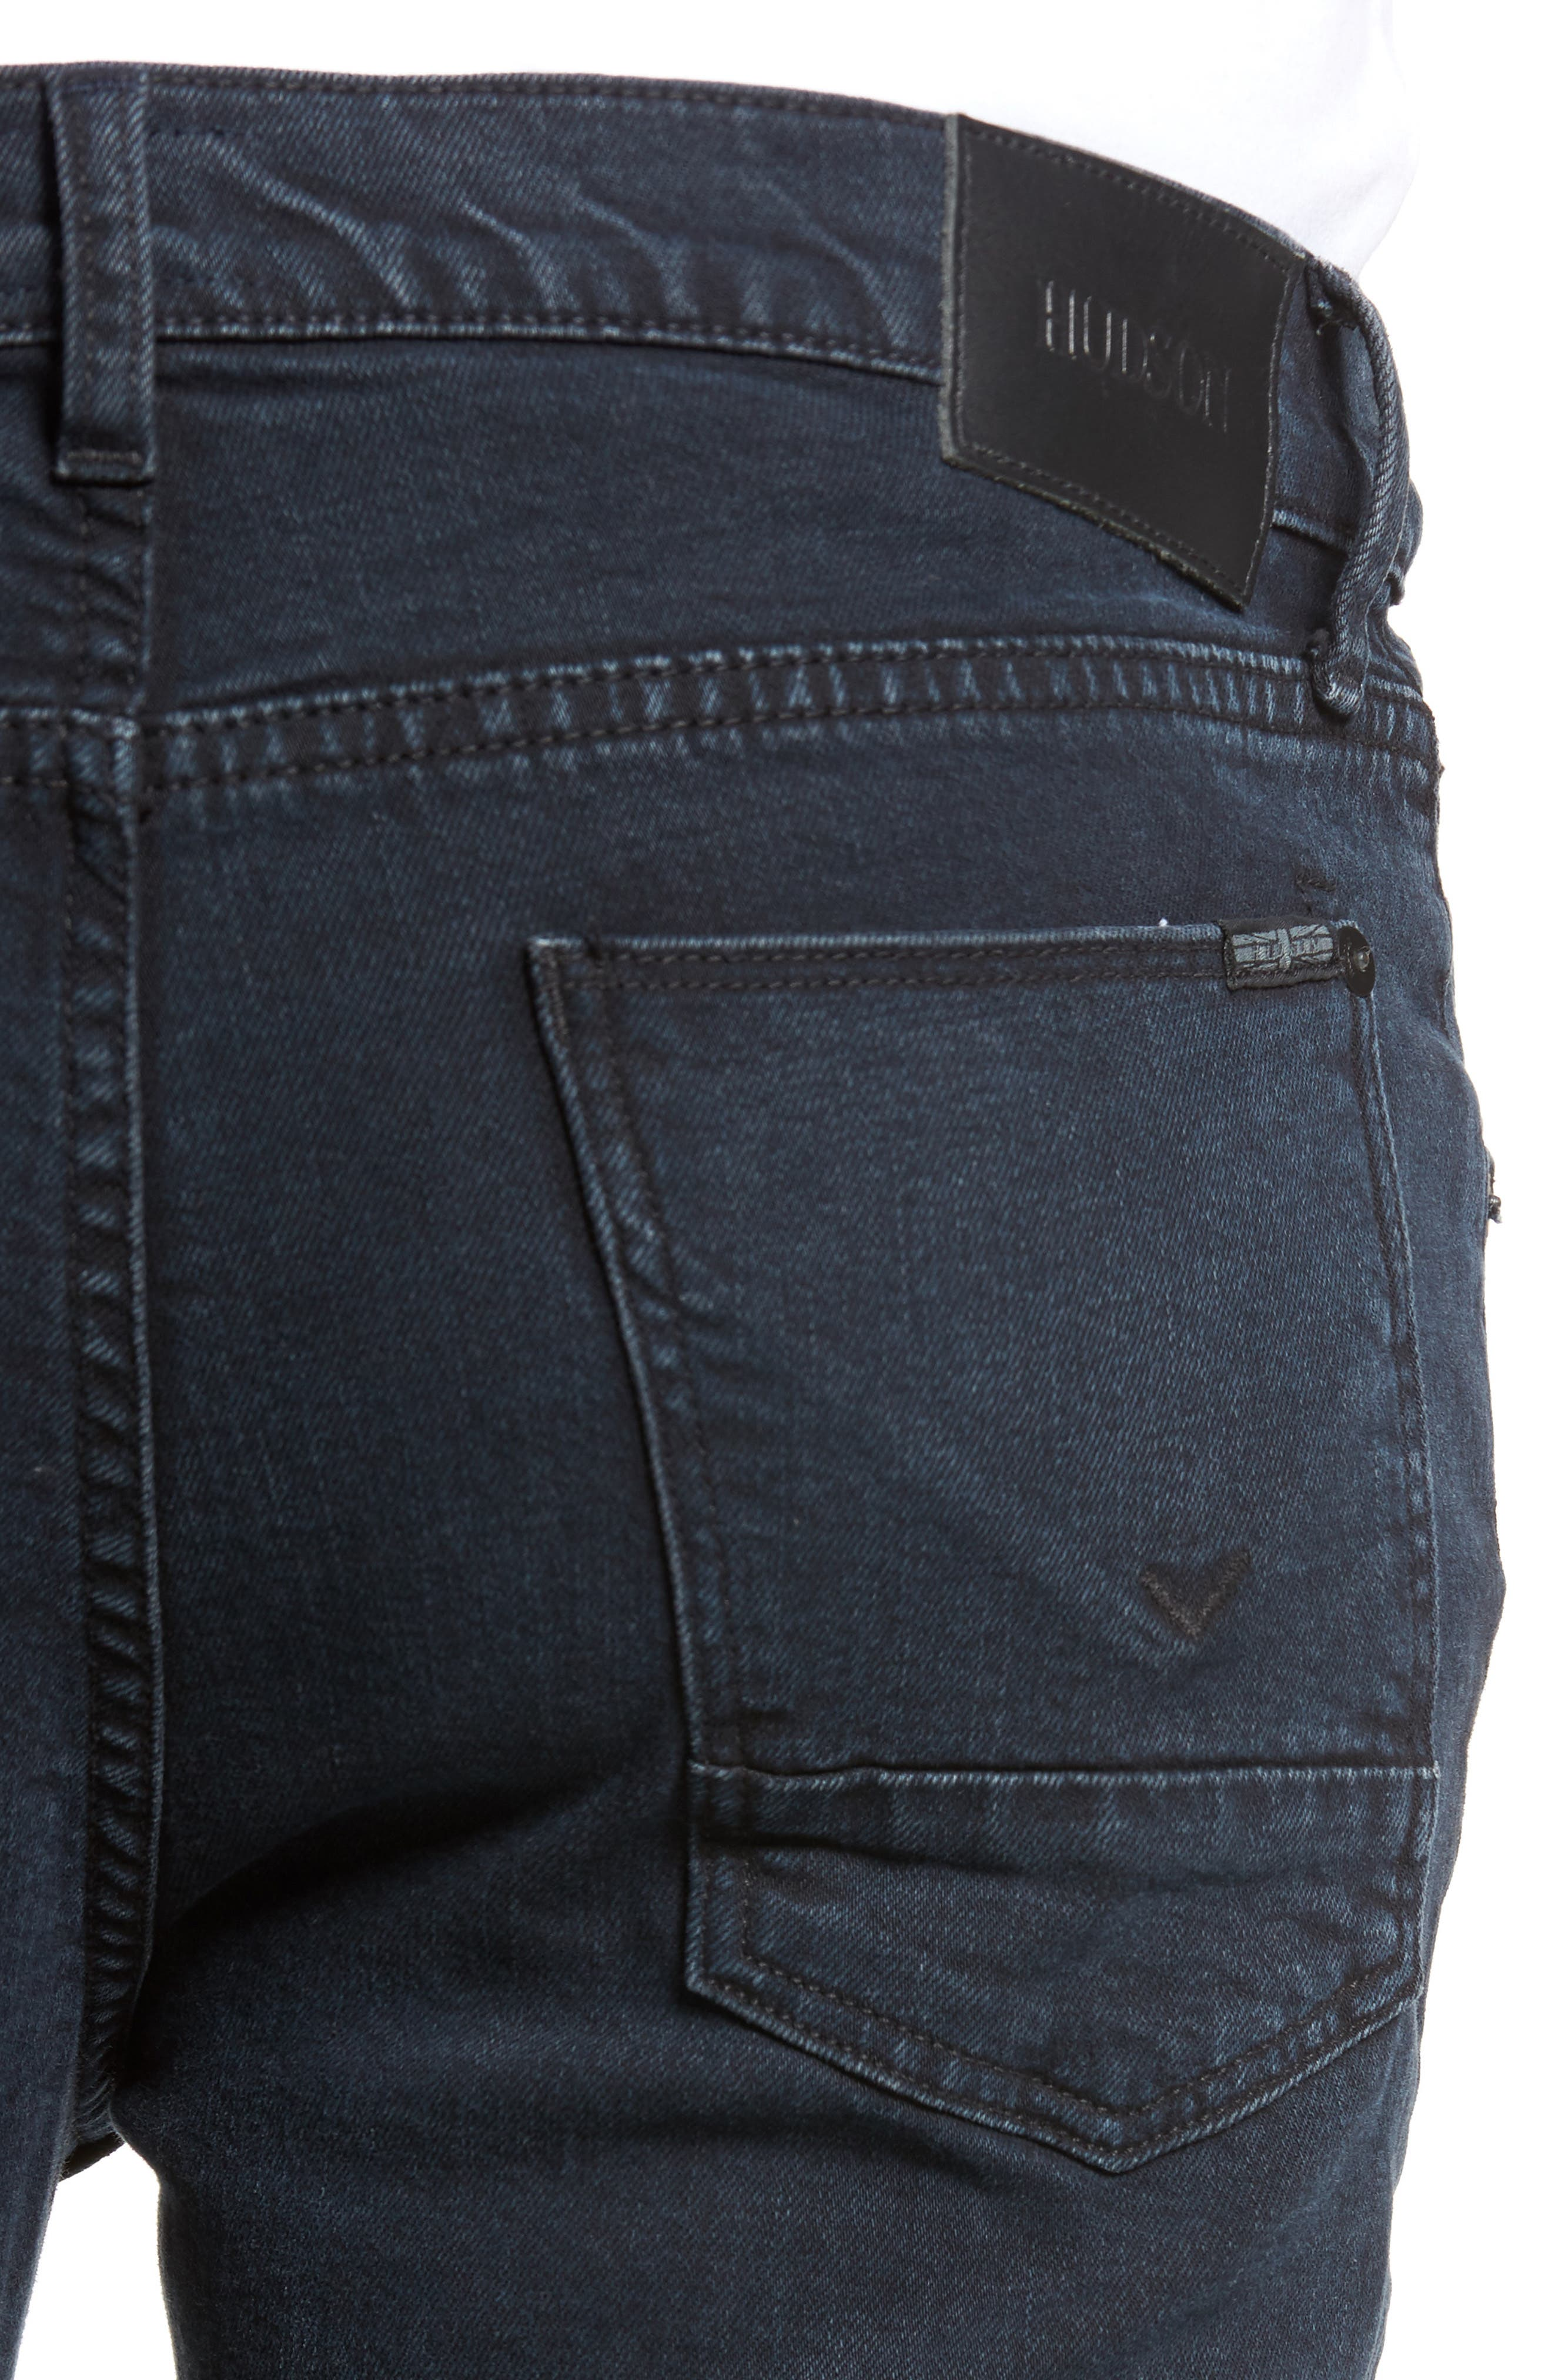 Axl Skinny Fit Jeans,                             Alternate thumbnail 4, color,                             401